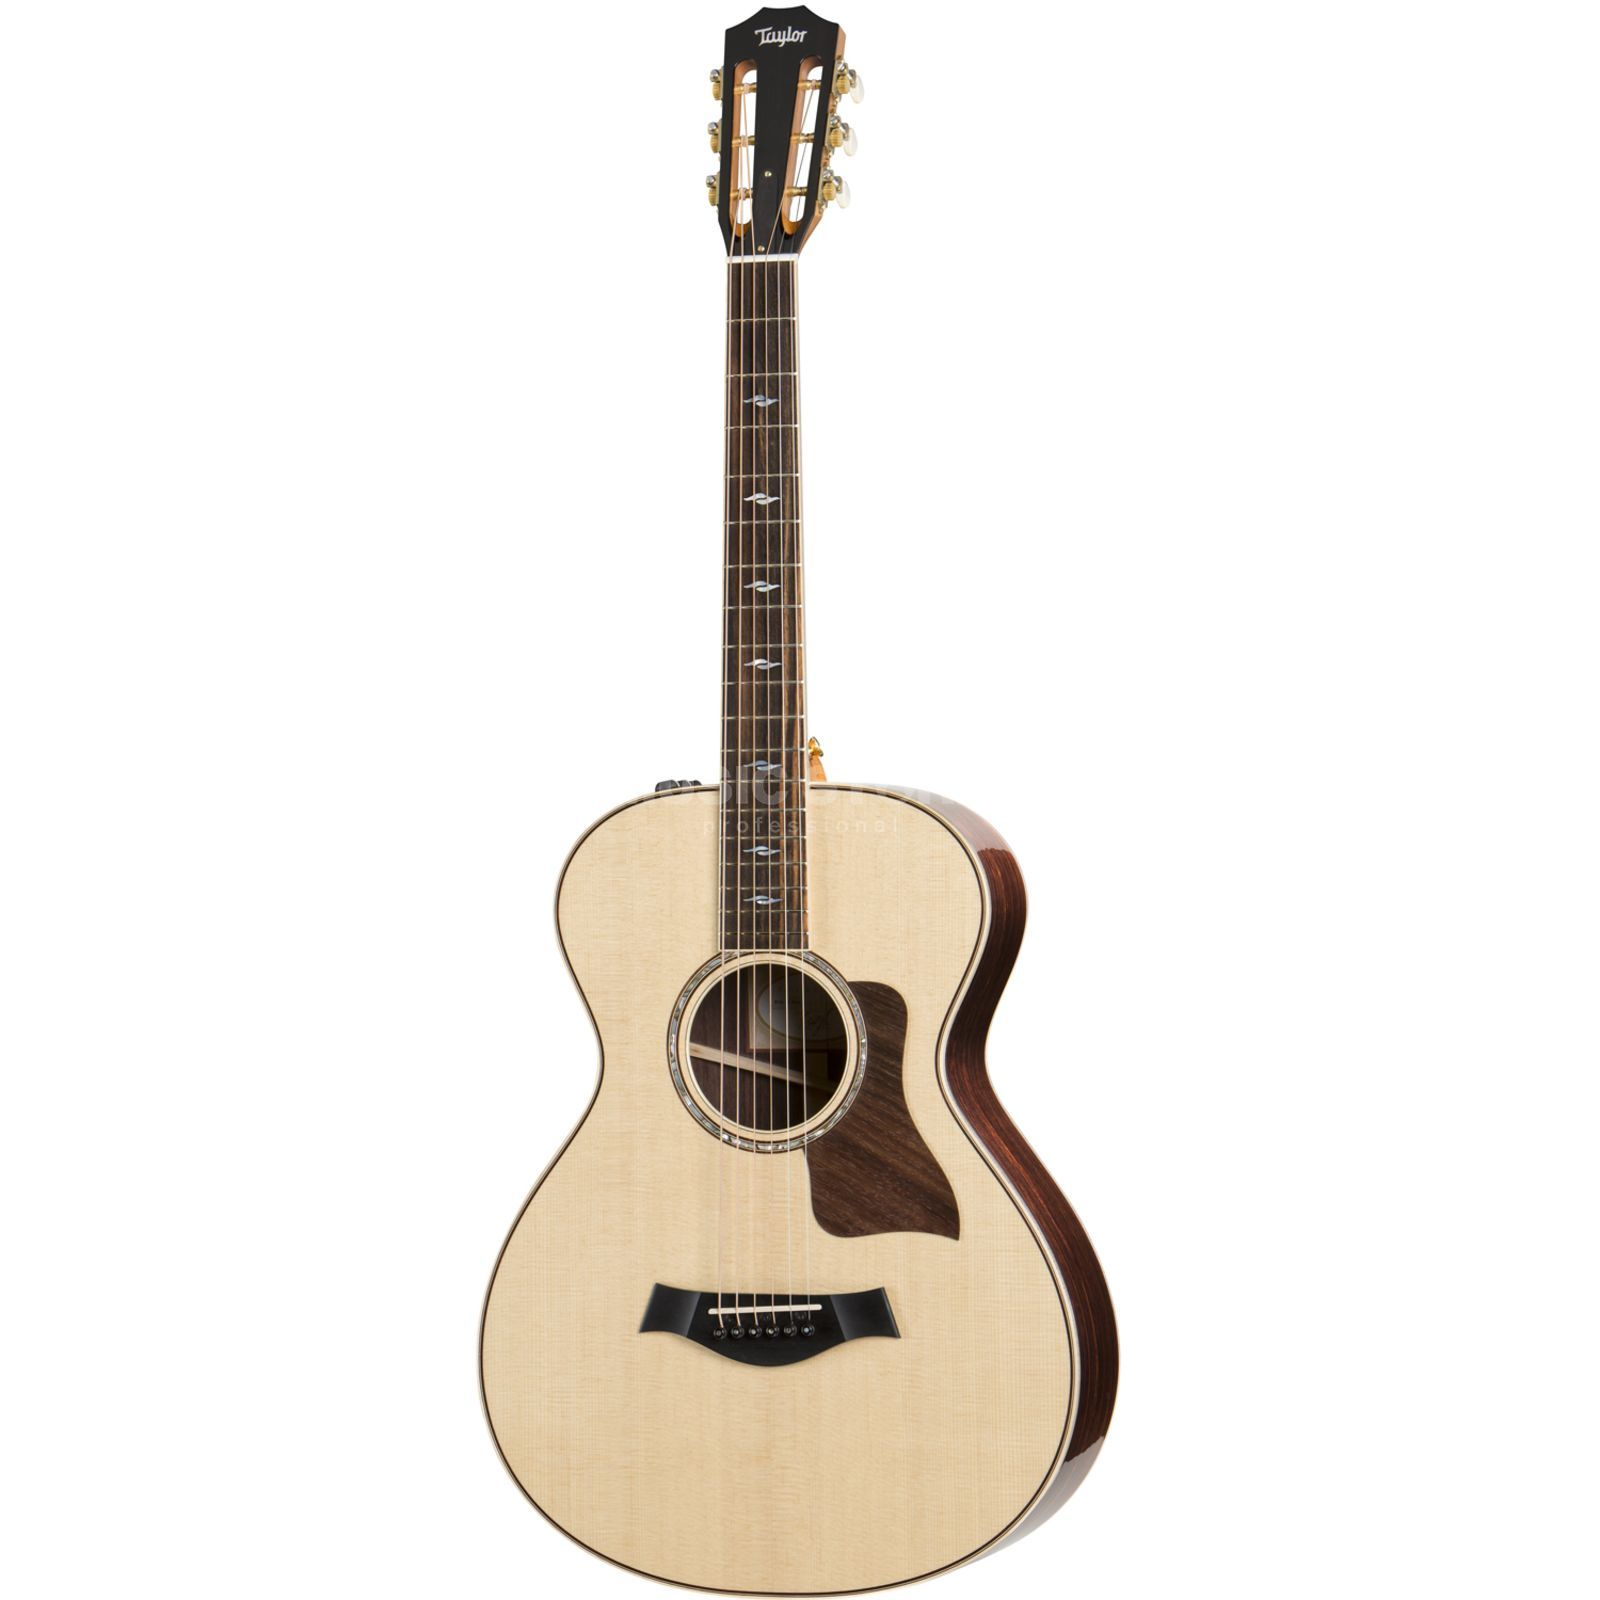 Taylor 812e 12th fret Grand Concert Natural Produktbild